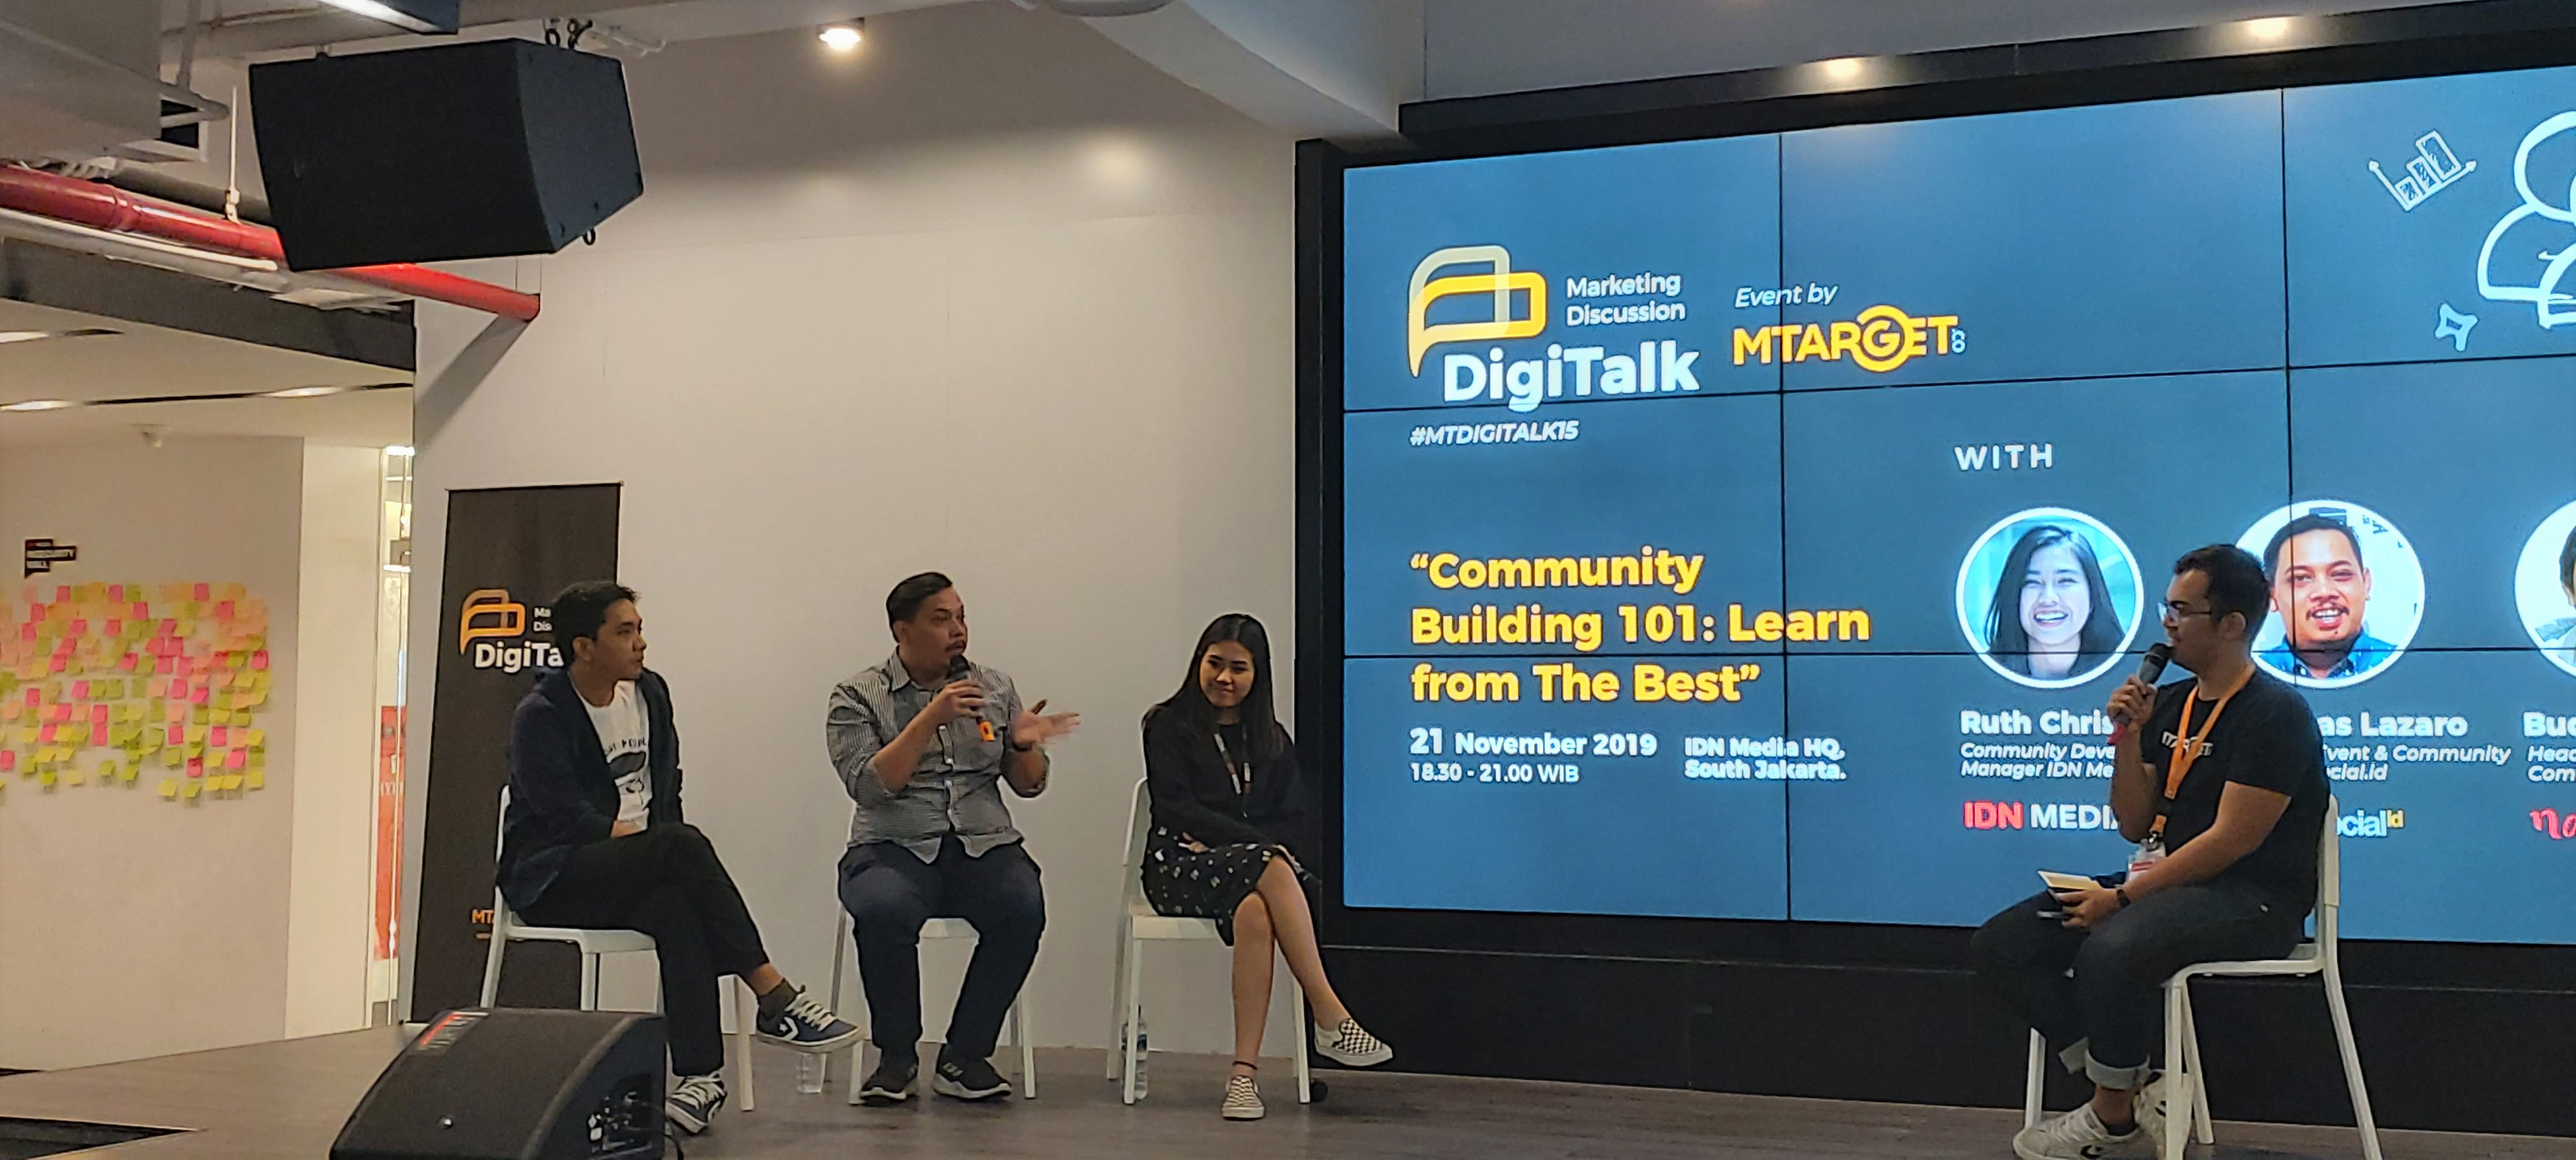 Digitalk at IDN Media: Media Companies to Create Content, Collaboration, and Community